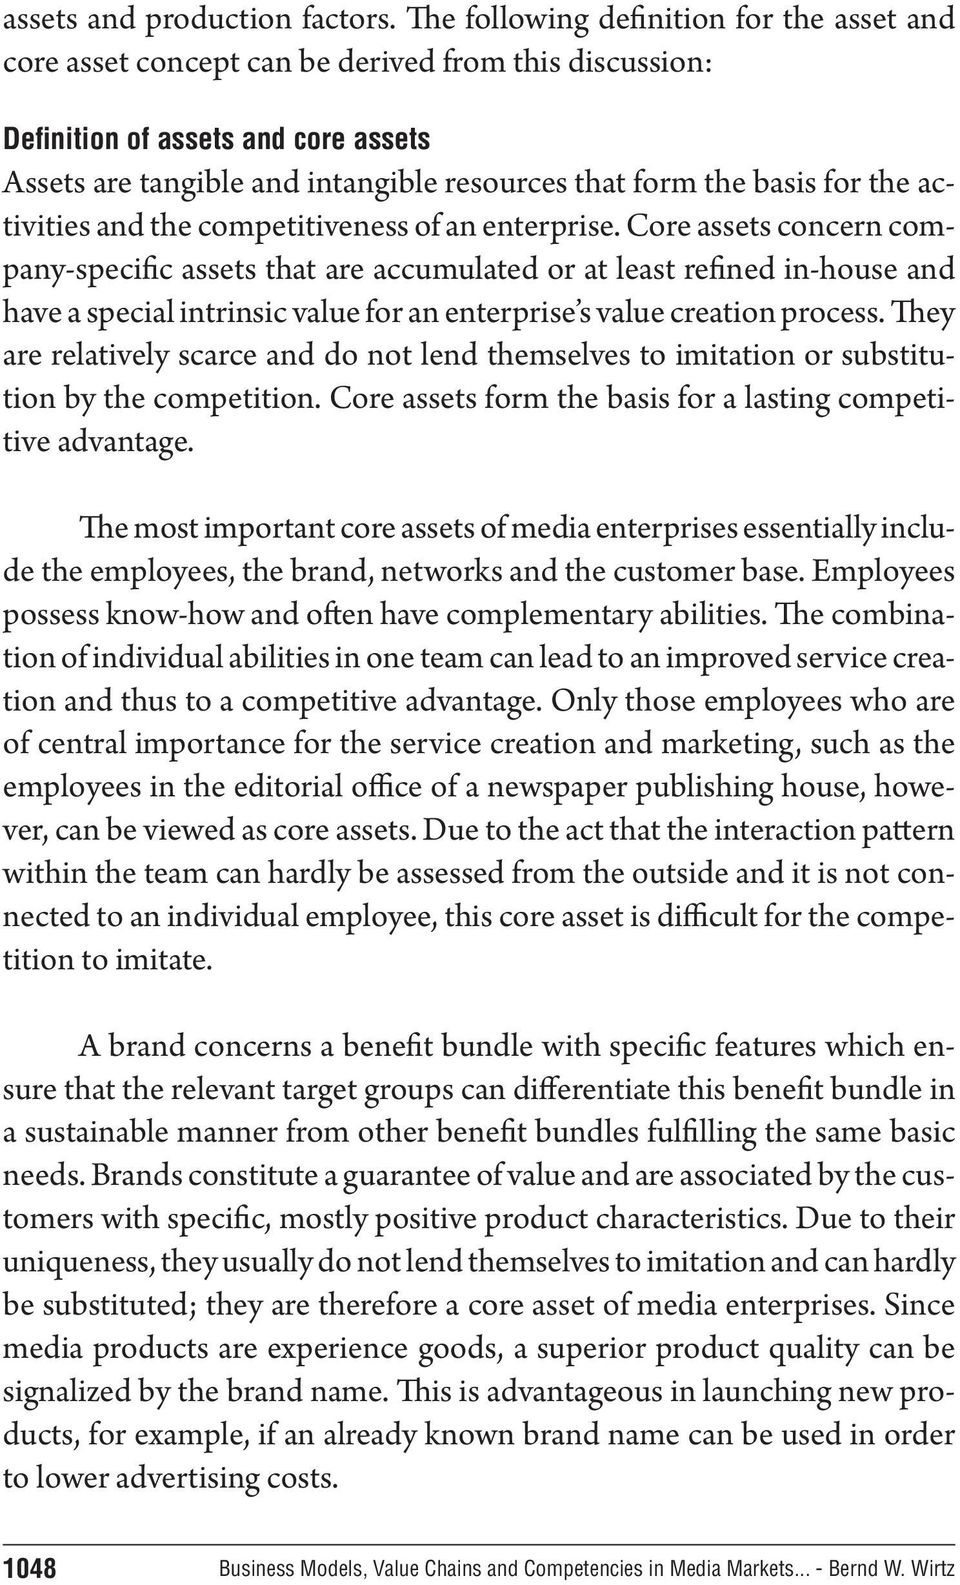 basis for the activities and the competitiveness of an enterprise.